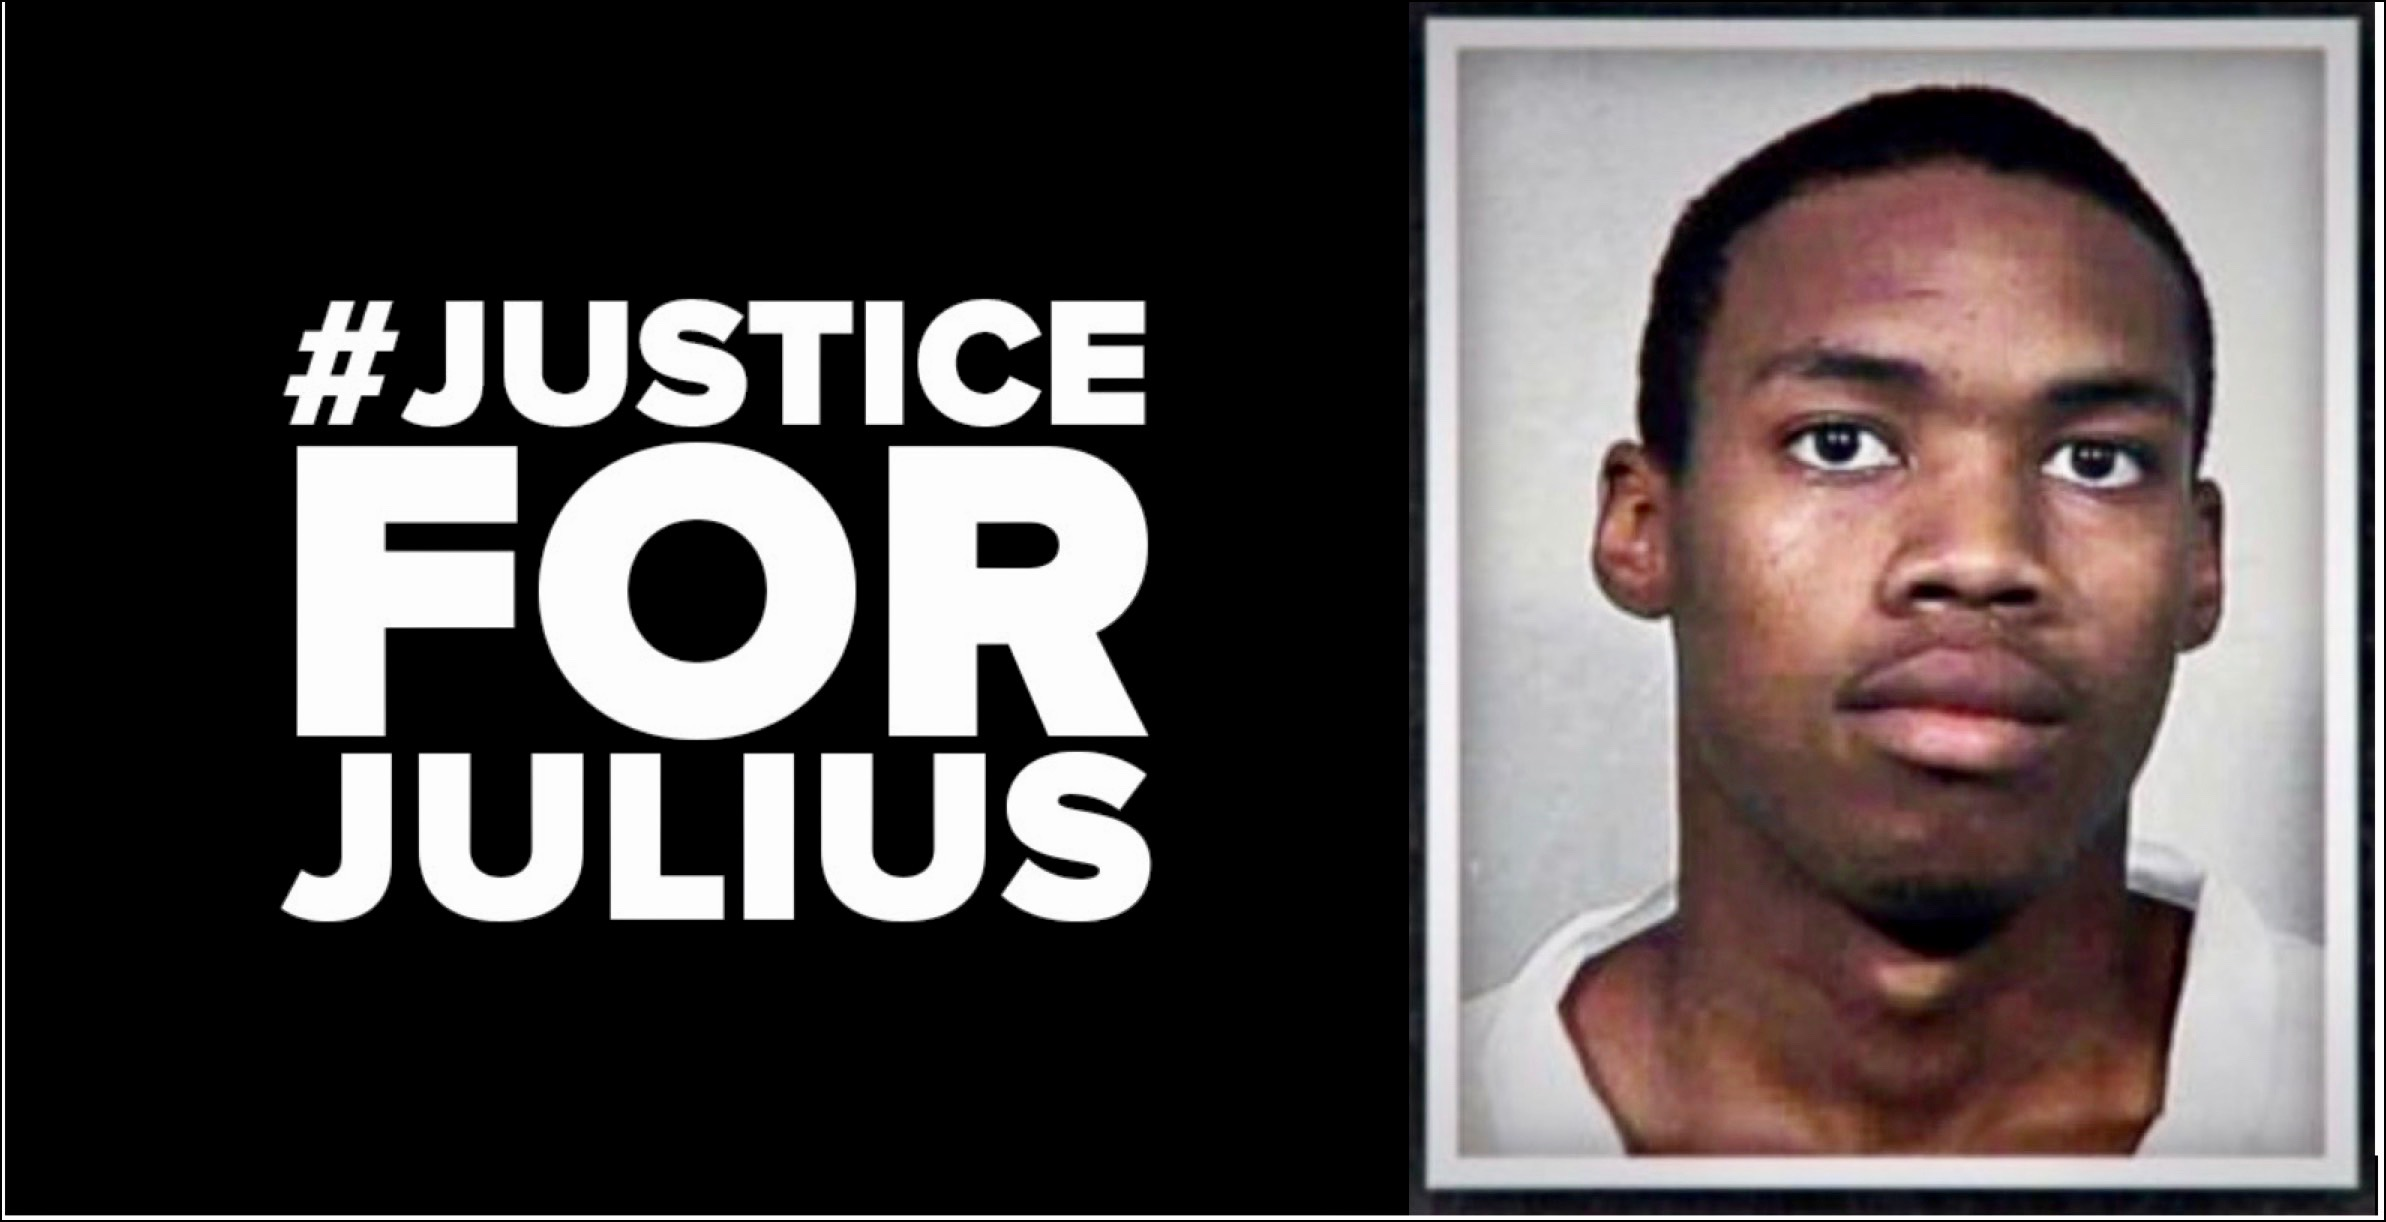 Justice for Julius with photo 2Aug2020 6